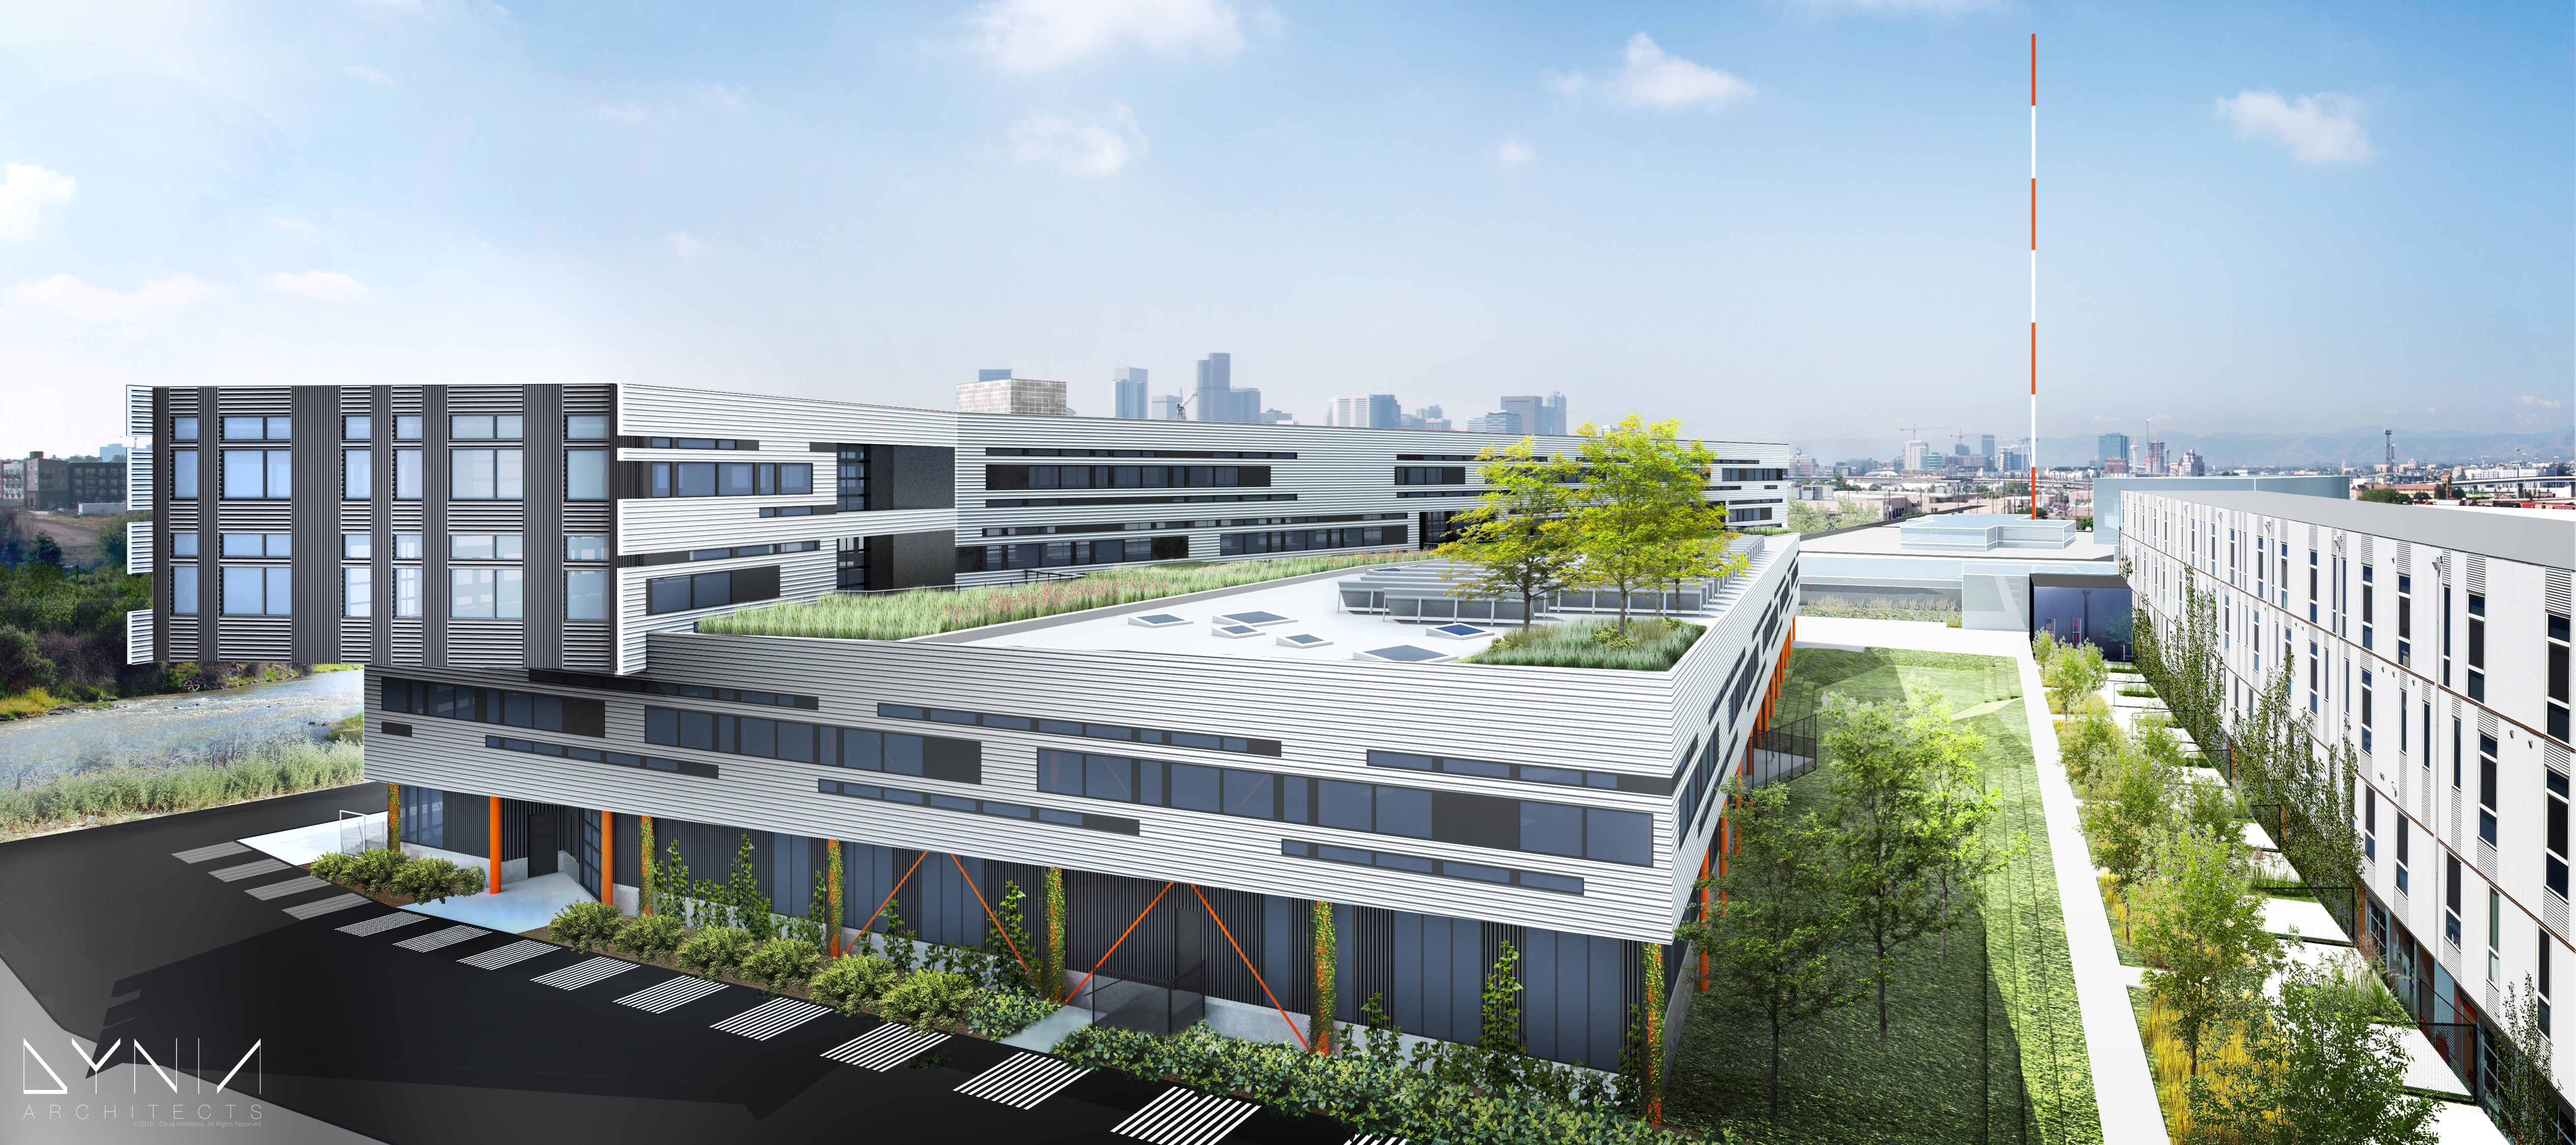 Zeppelin Development Begins Construction on Built-to-Suit Office for Boa Technology at TAXI Site in RiNo